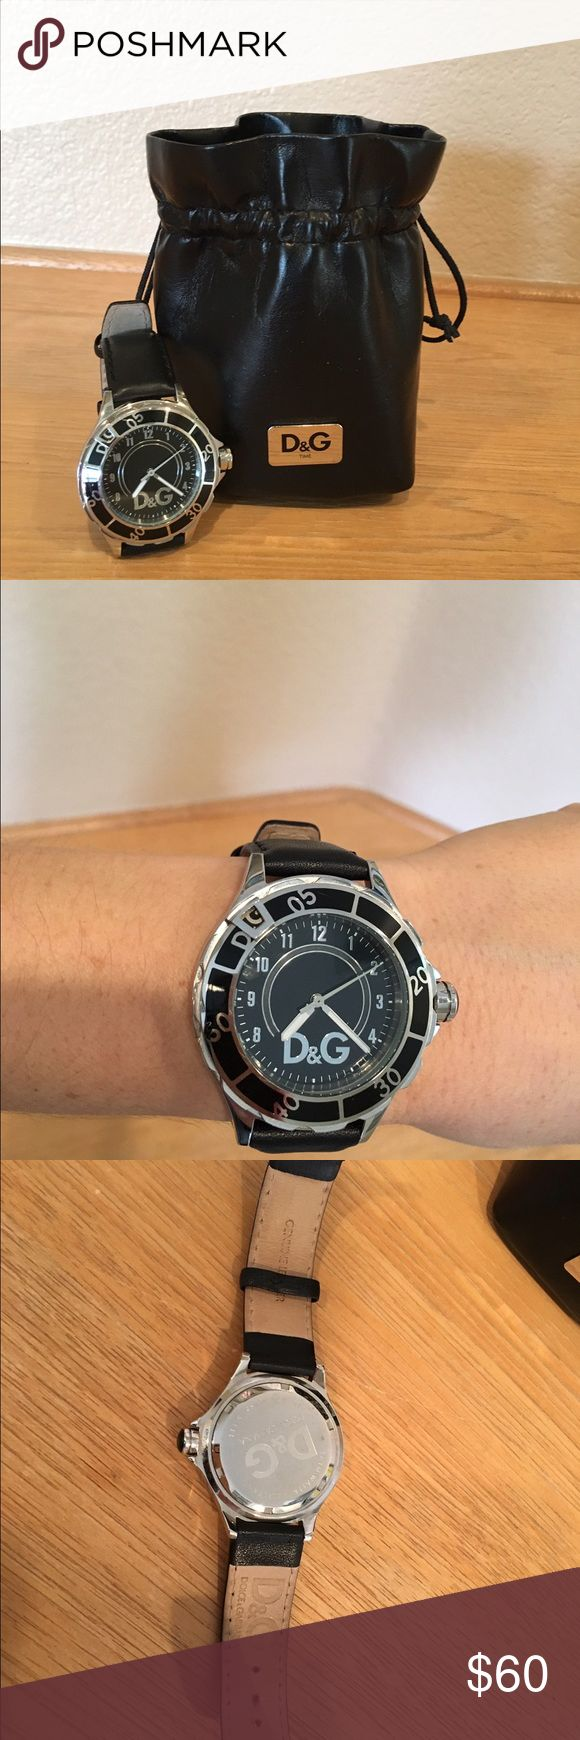 """D&G Dolce & Gabbana """"New Anchor"""" women's watch D&G Dolce & Gabbana """"New Anchor"""" oversized women's watch in black. Stainless steel. Genuine leather band. New battery installed. Gently used. No instruction manual. Dolce & Gabbana Accessories Watches"""